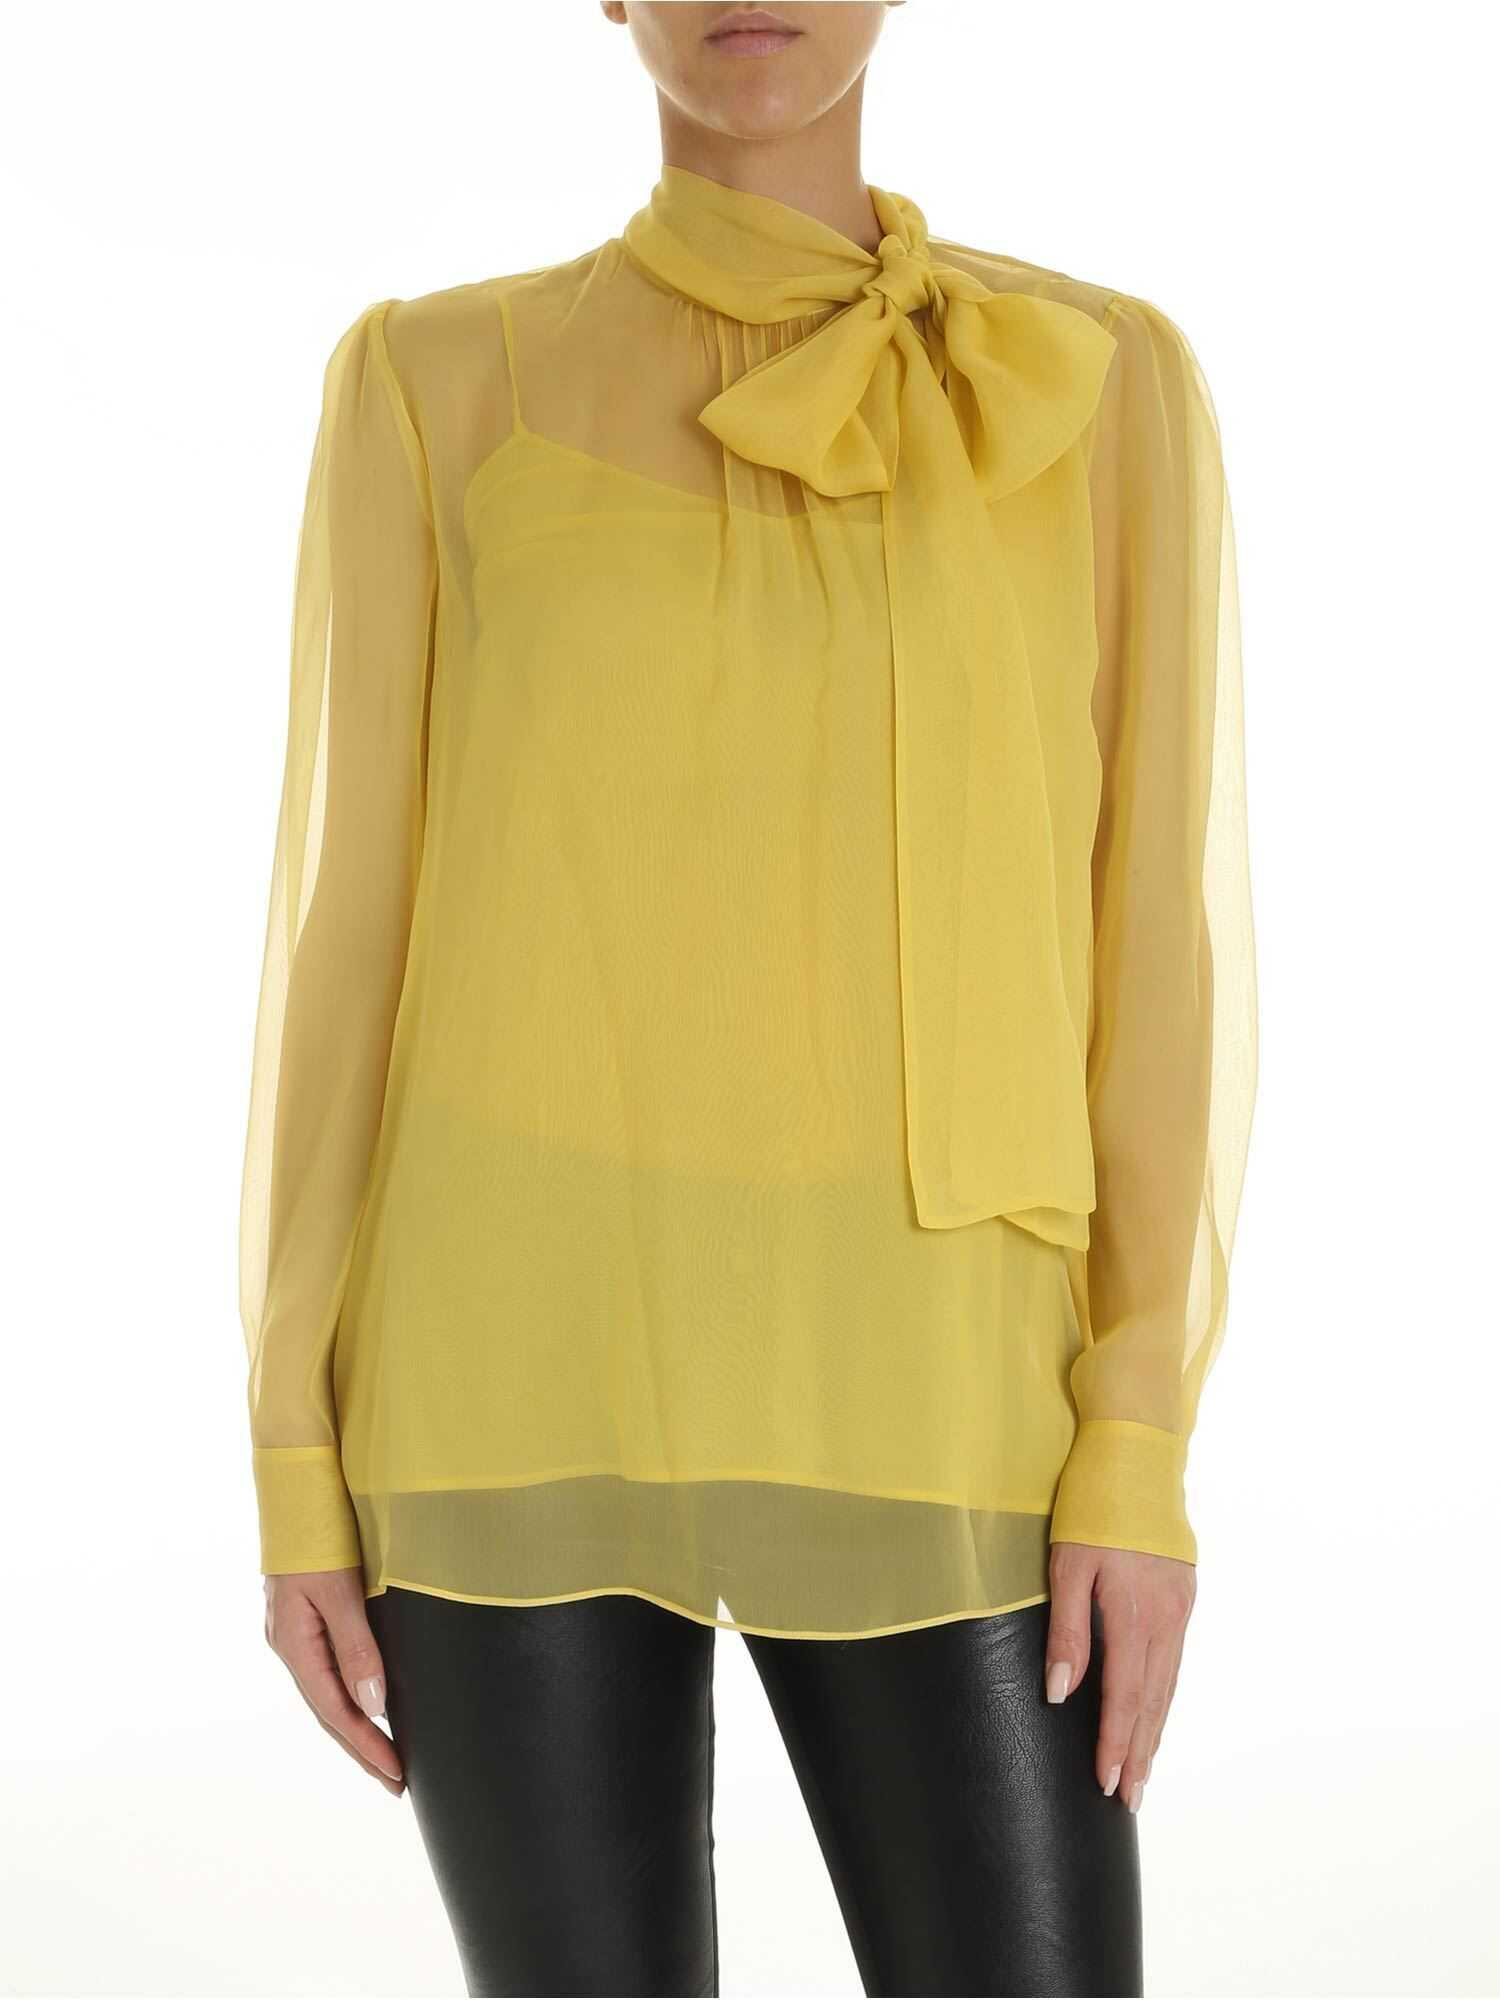 Bow Chiffon Shirt In Yellow thumbnail